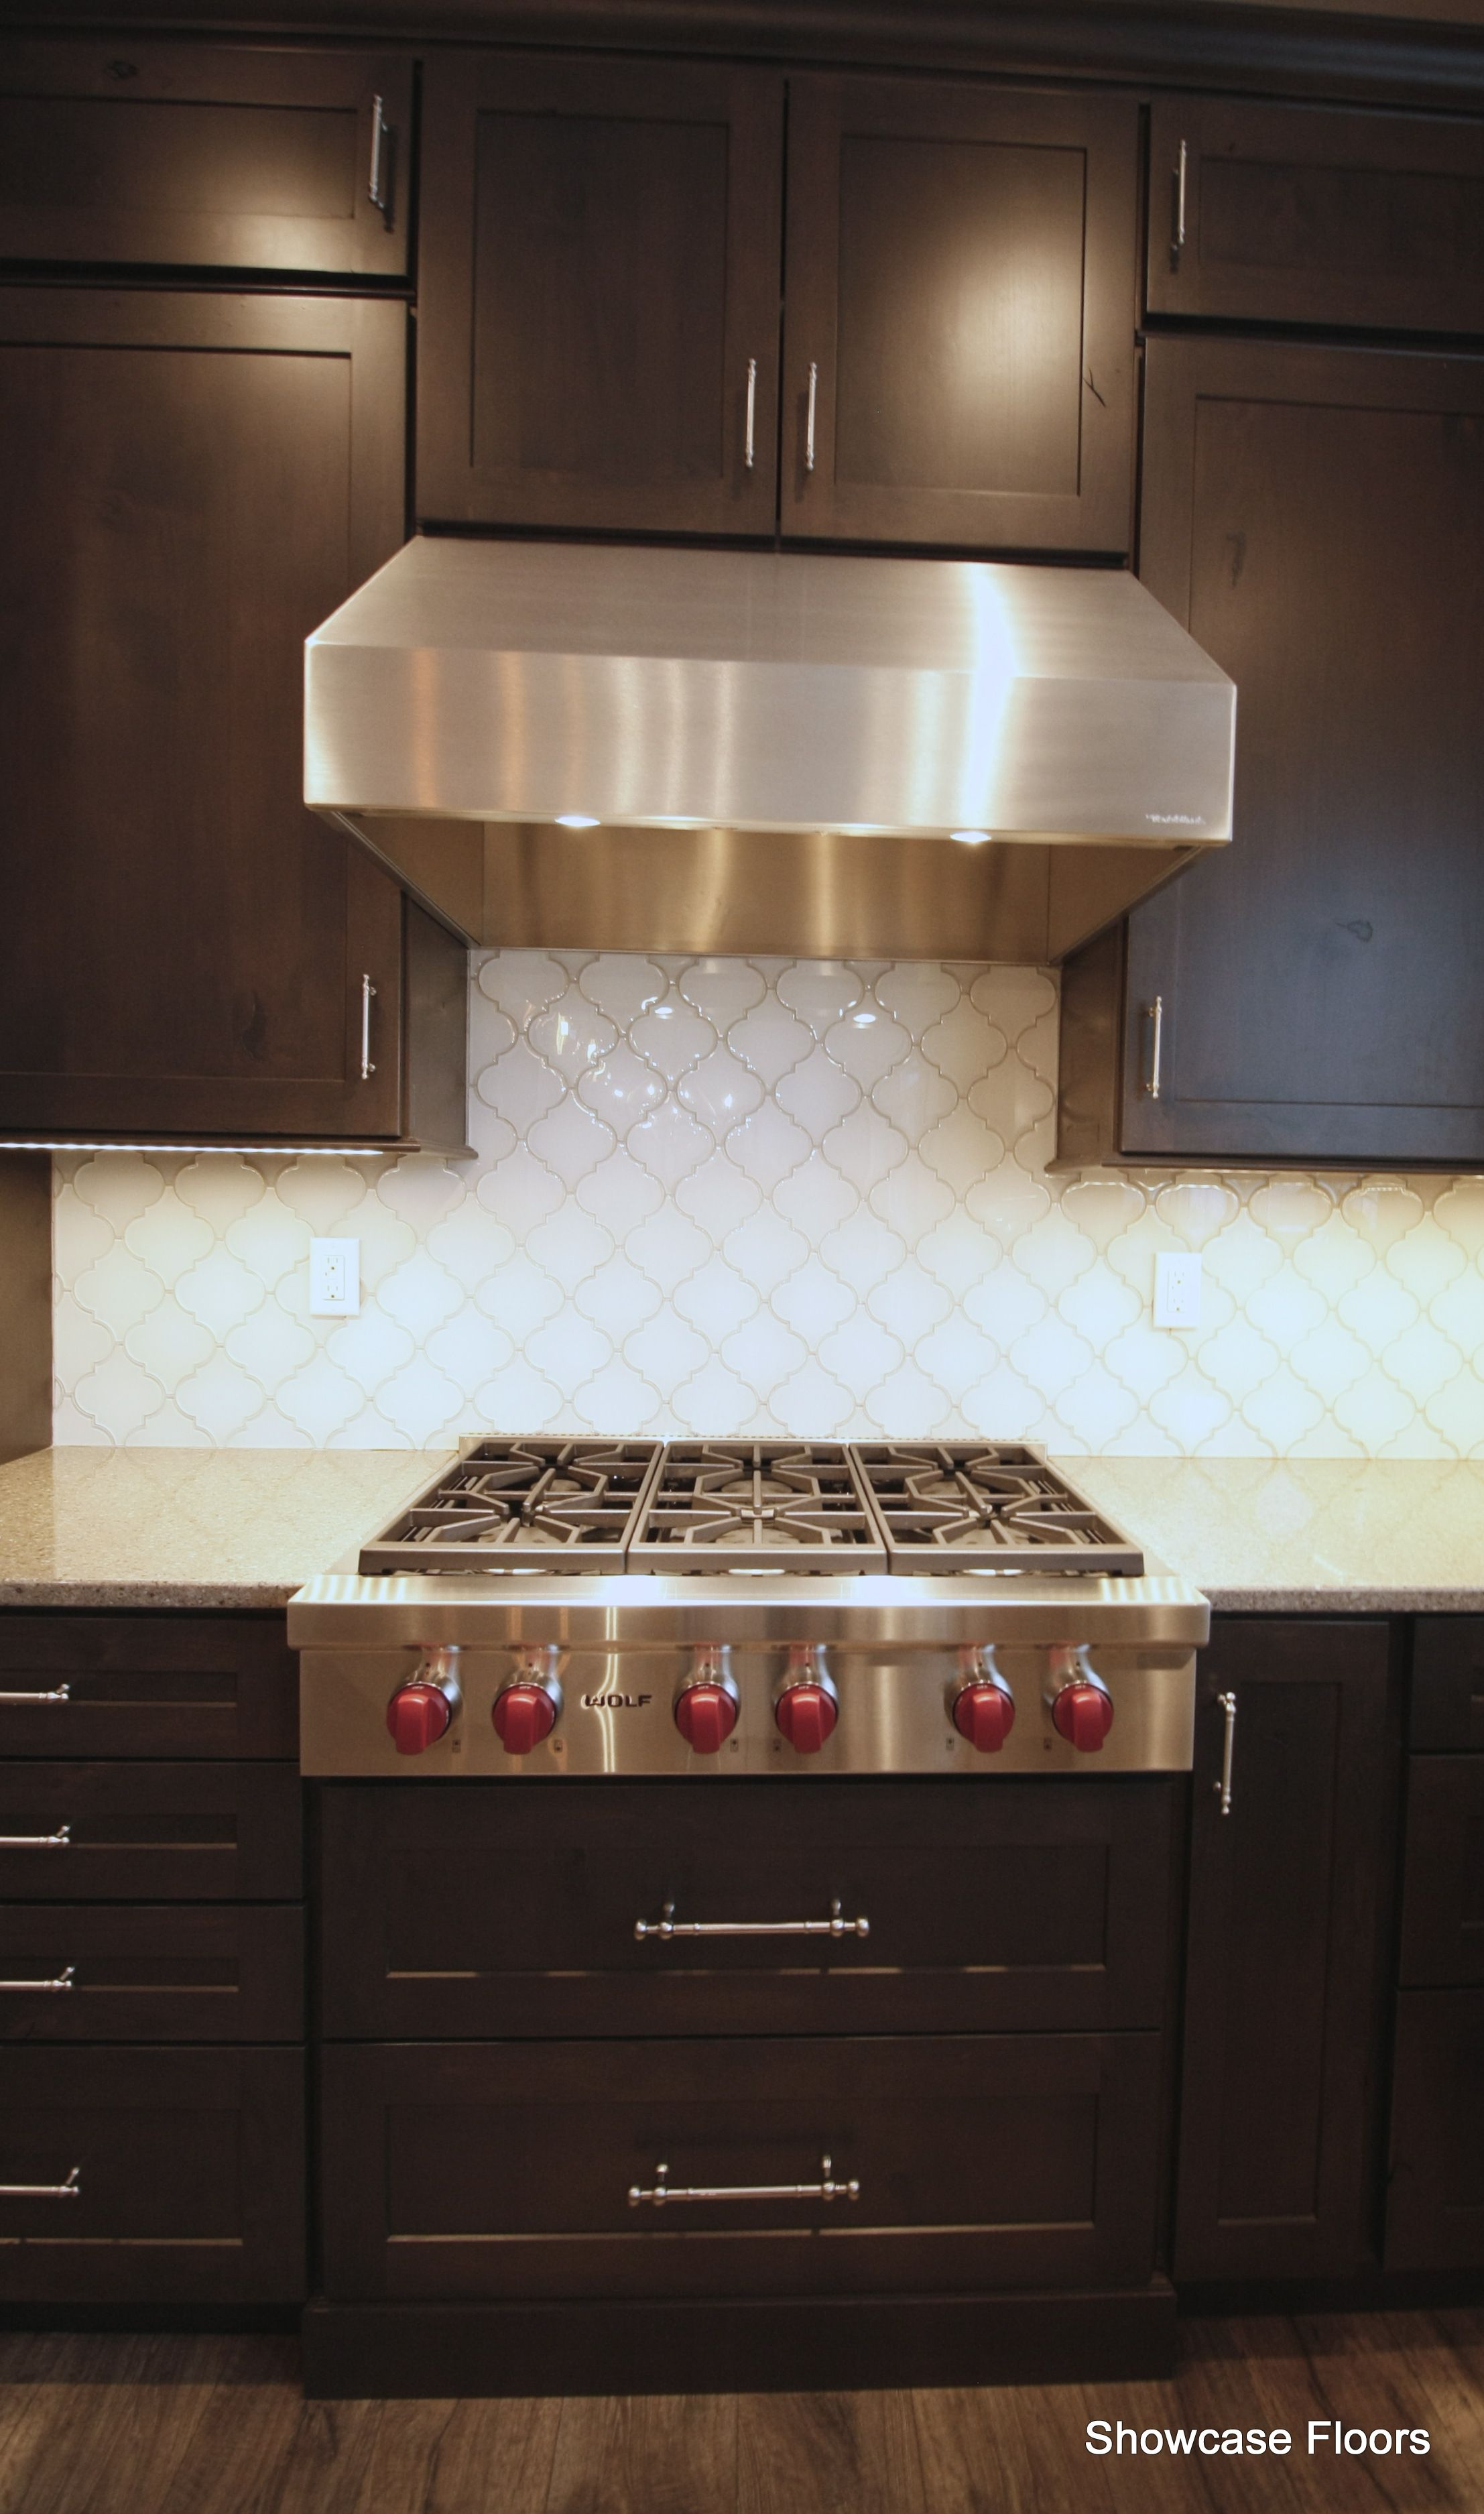 Beautiful Backsplash Tile Against Dark Cabinets And A Wolf Range Showcase Floors Portfolio Kitchen Cabinets Dark Cabinets Wolf Range